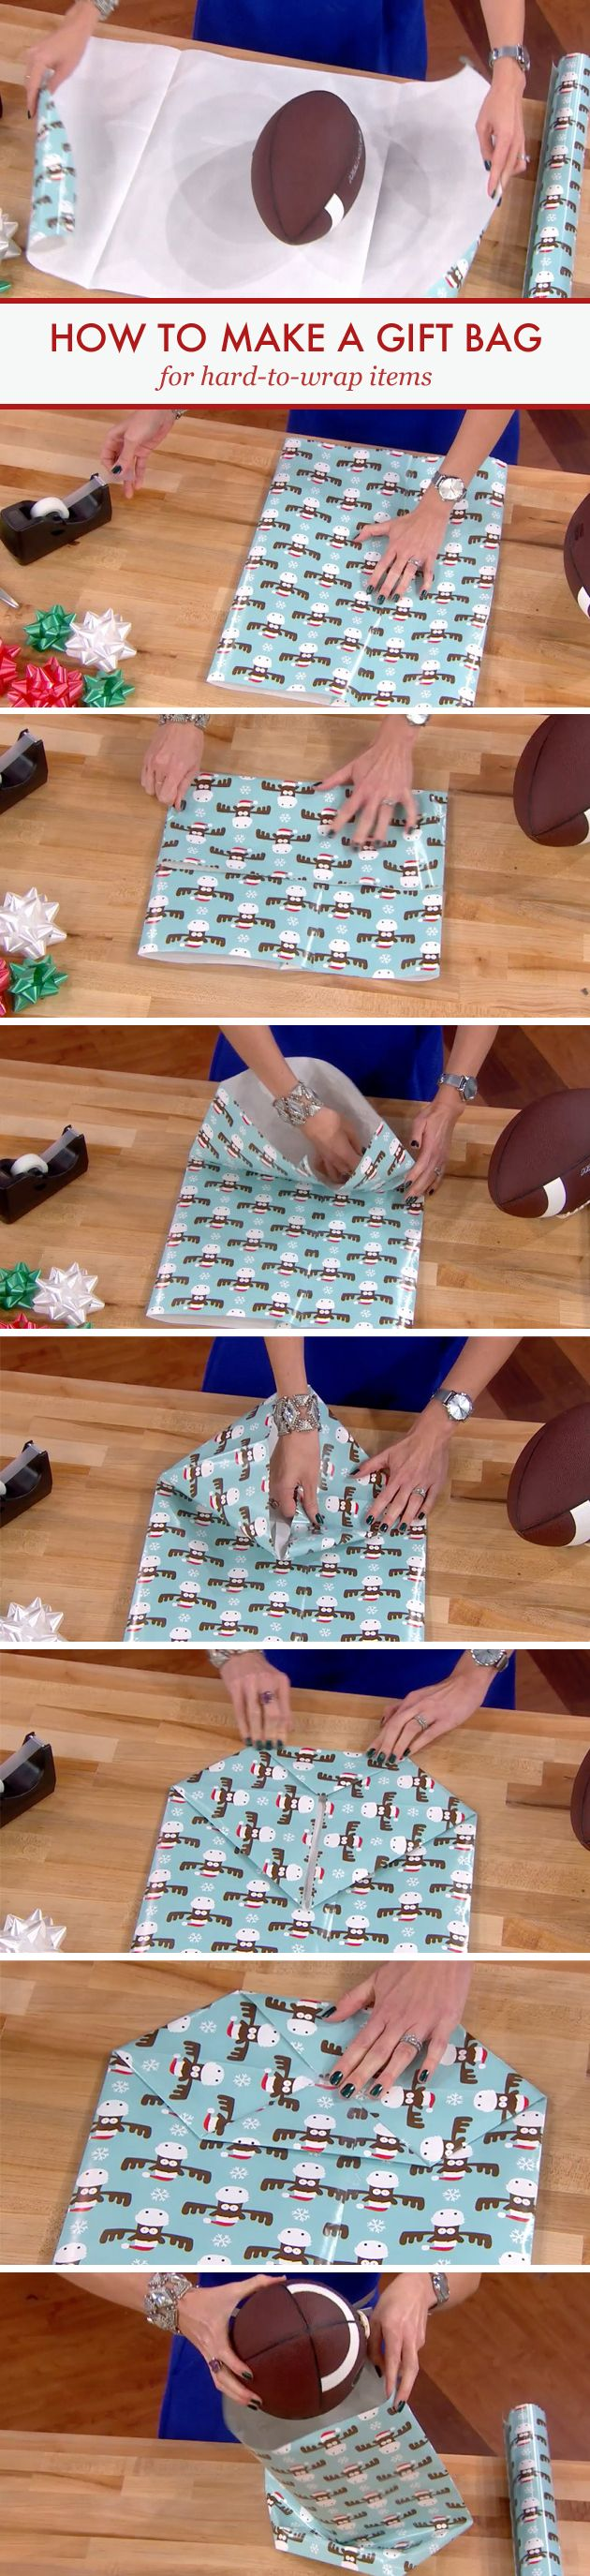 How to make DIY gift bags for hard-to-wrap items #Tip Used this ...